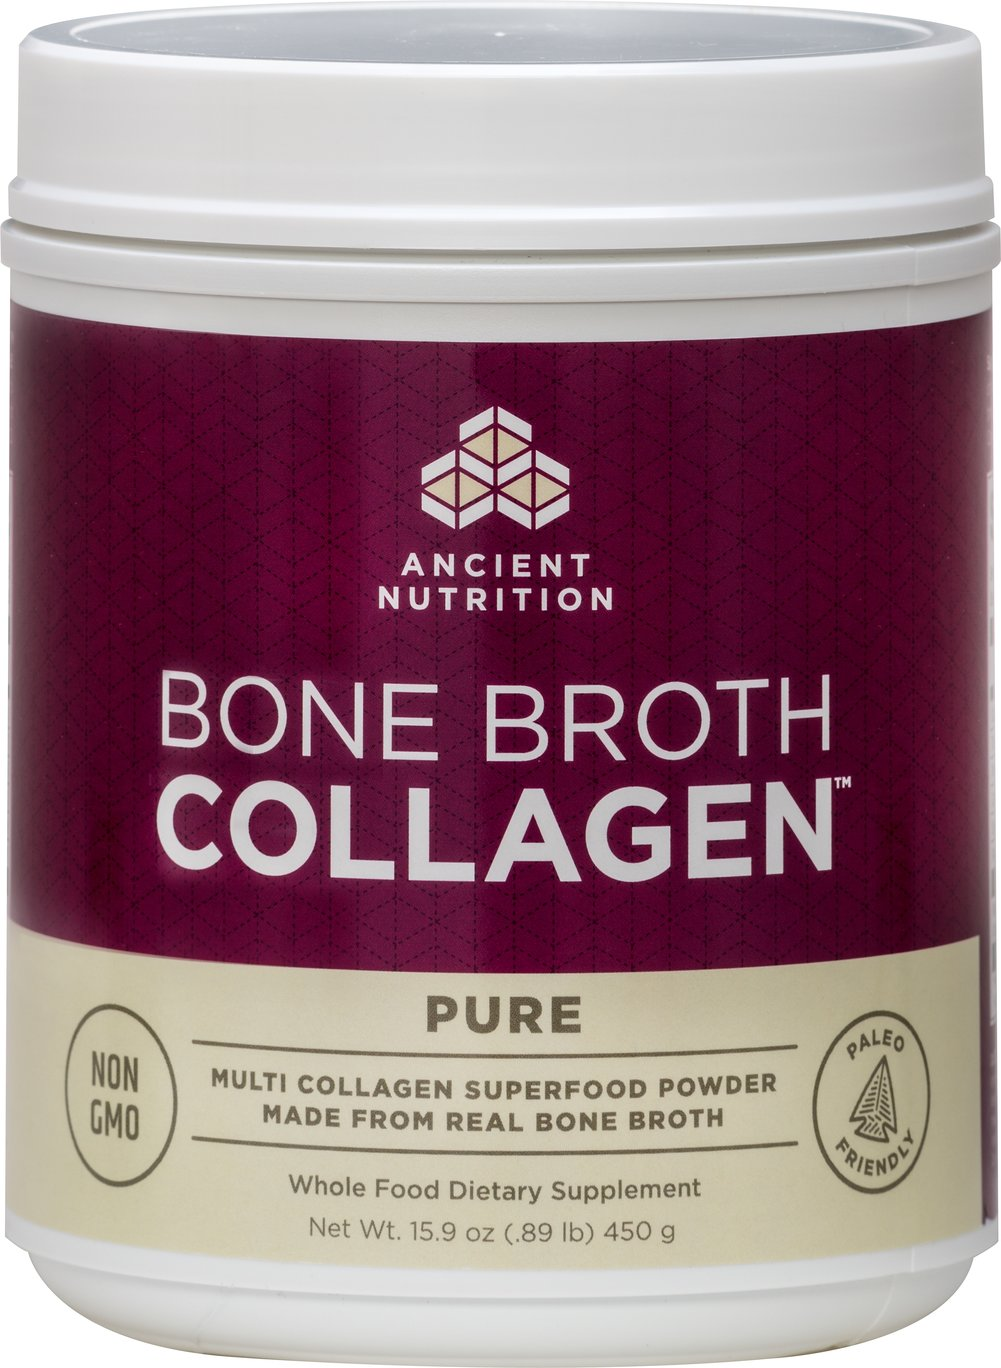 Bone Broth Collagen Pure Thumbnail Alternate Bottle View